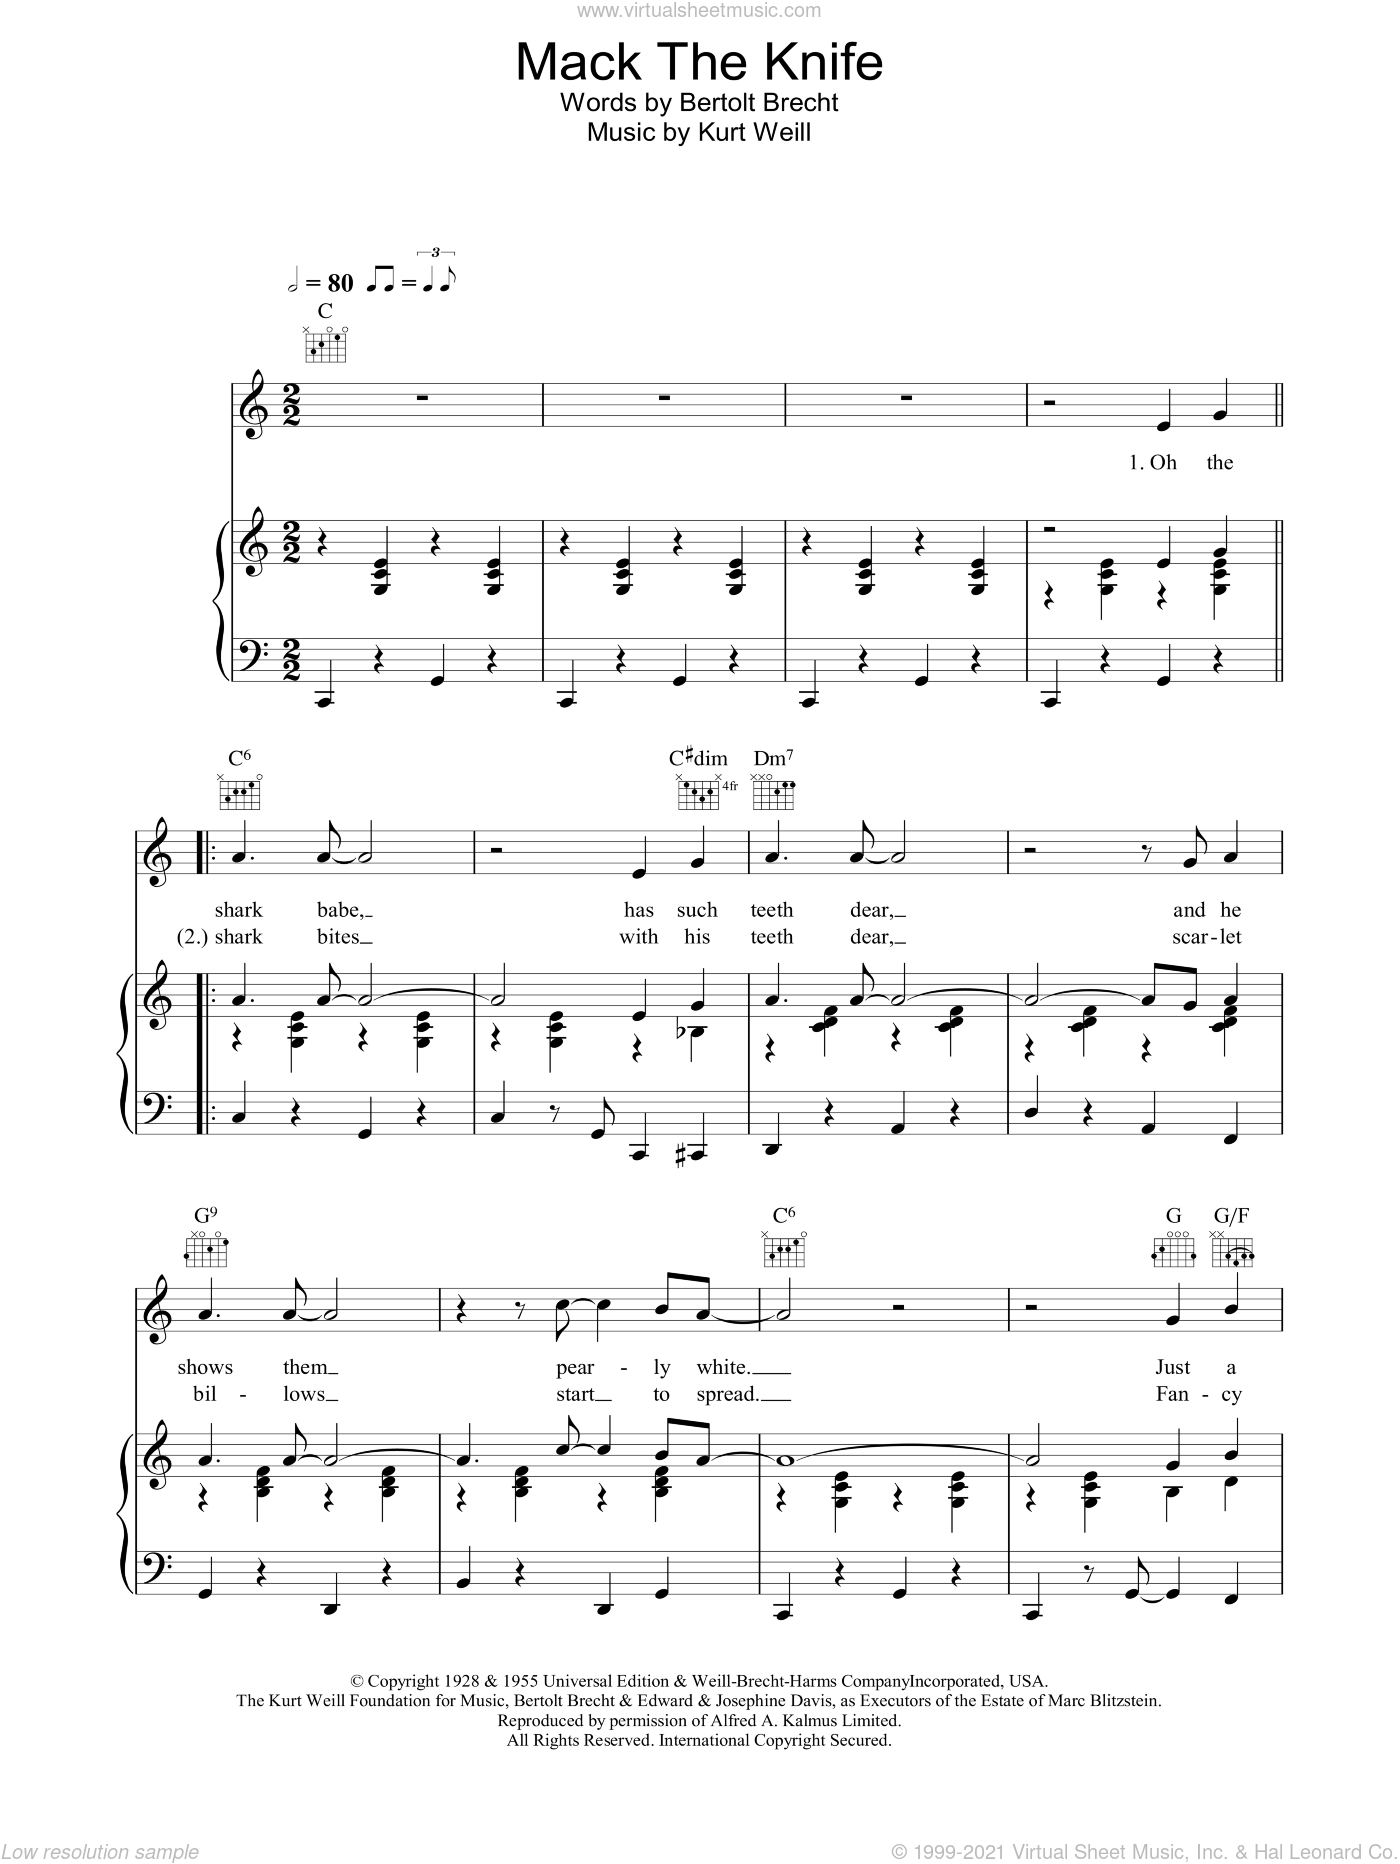 Mack The Knife sheet music for voice, piano or guitar by Bobby Darin, Bertolt Brecht and Kurt Weill, intermediate skill level